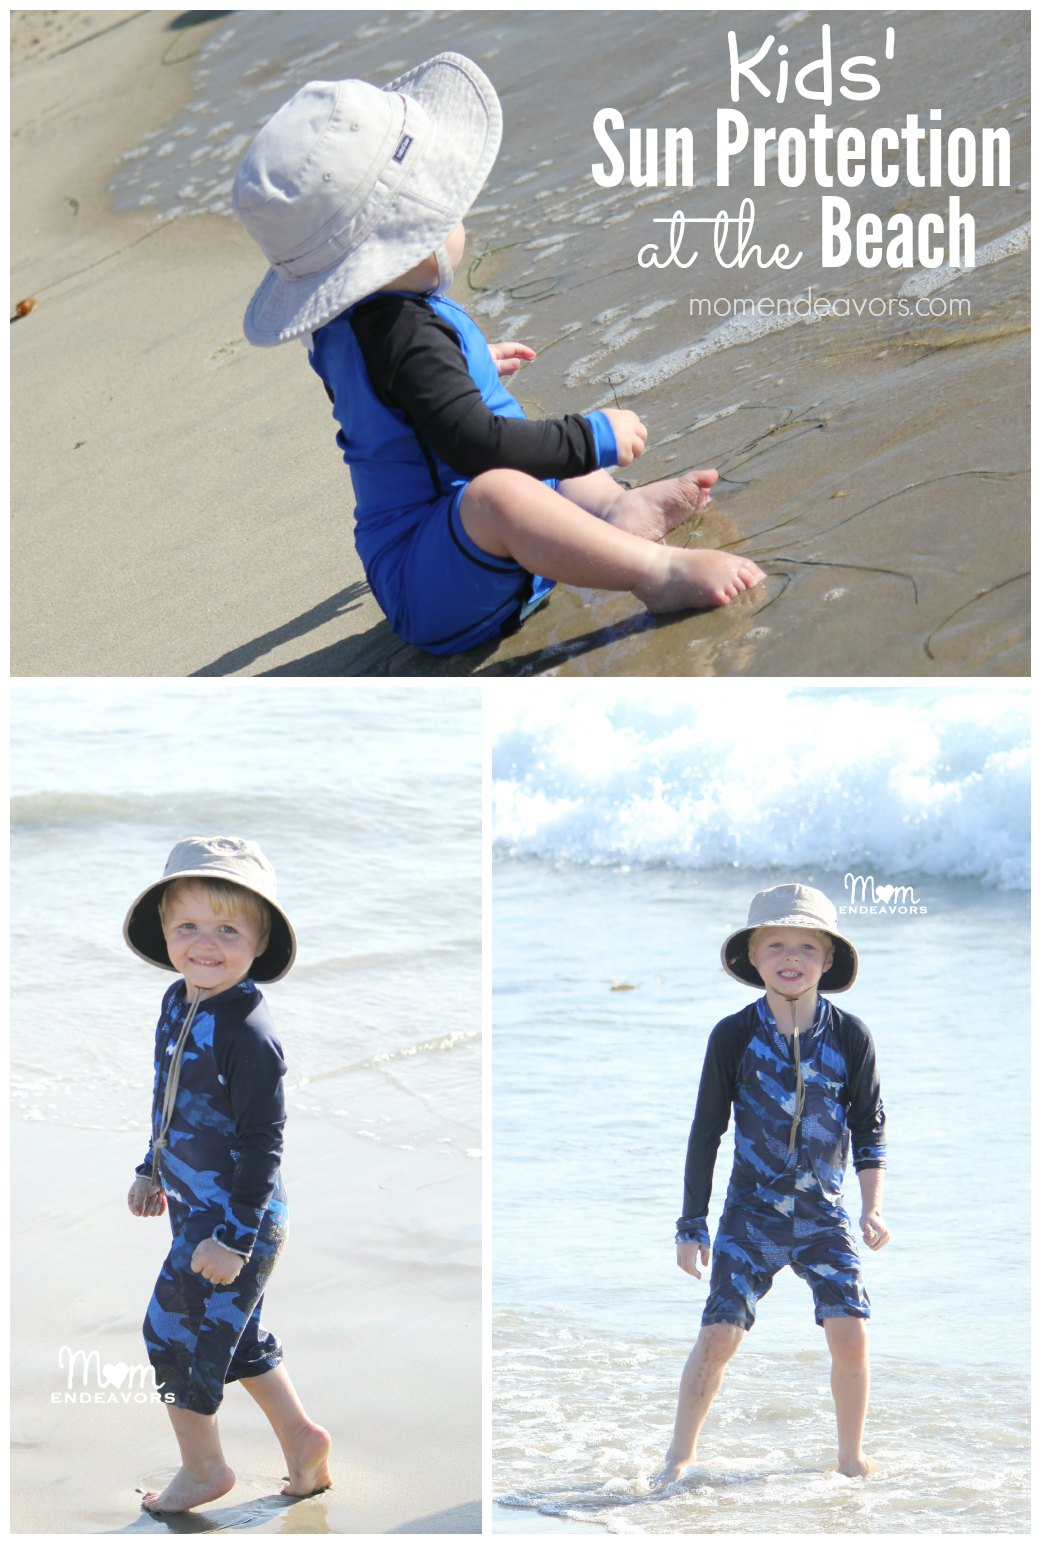 Kids' Sun Protection at the Beach